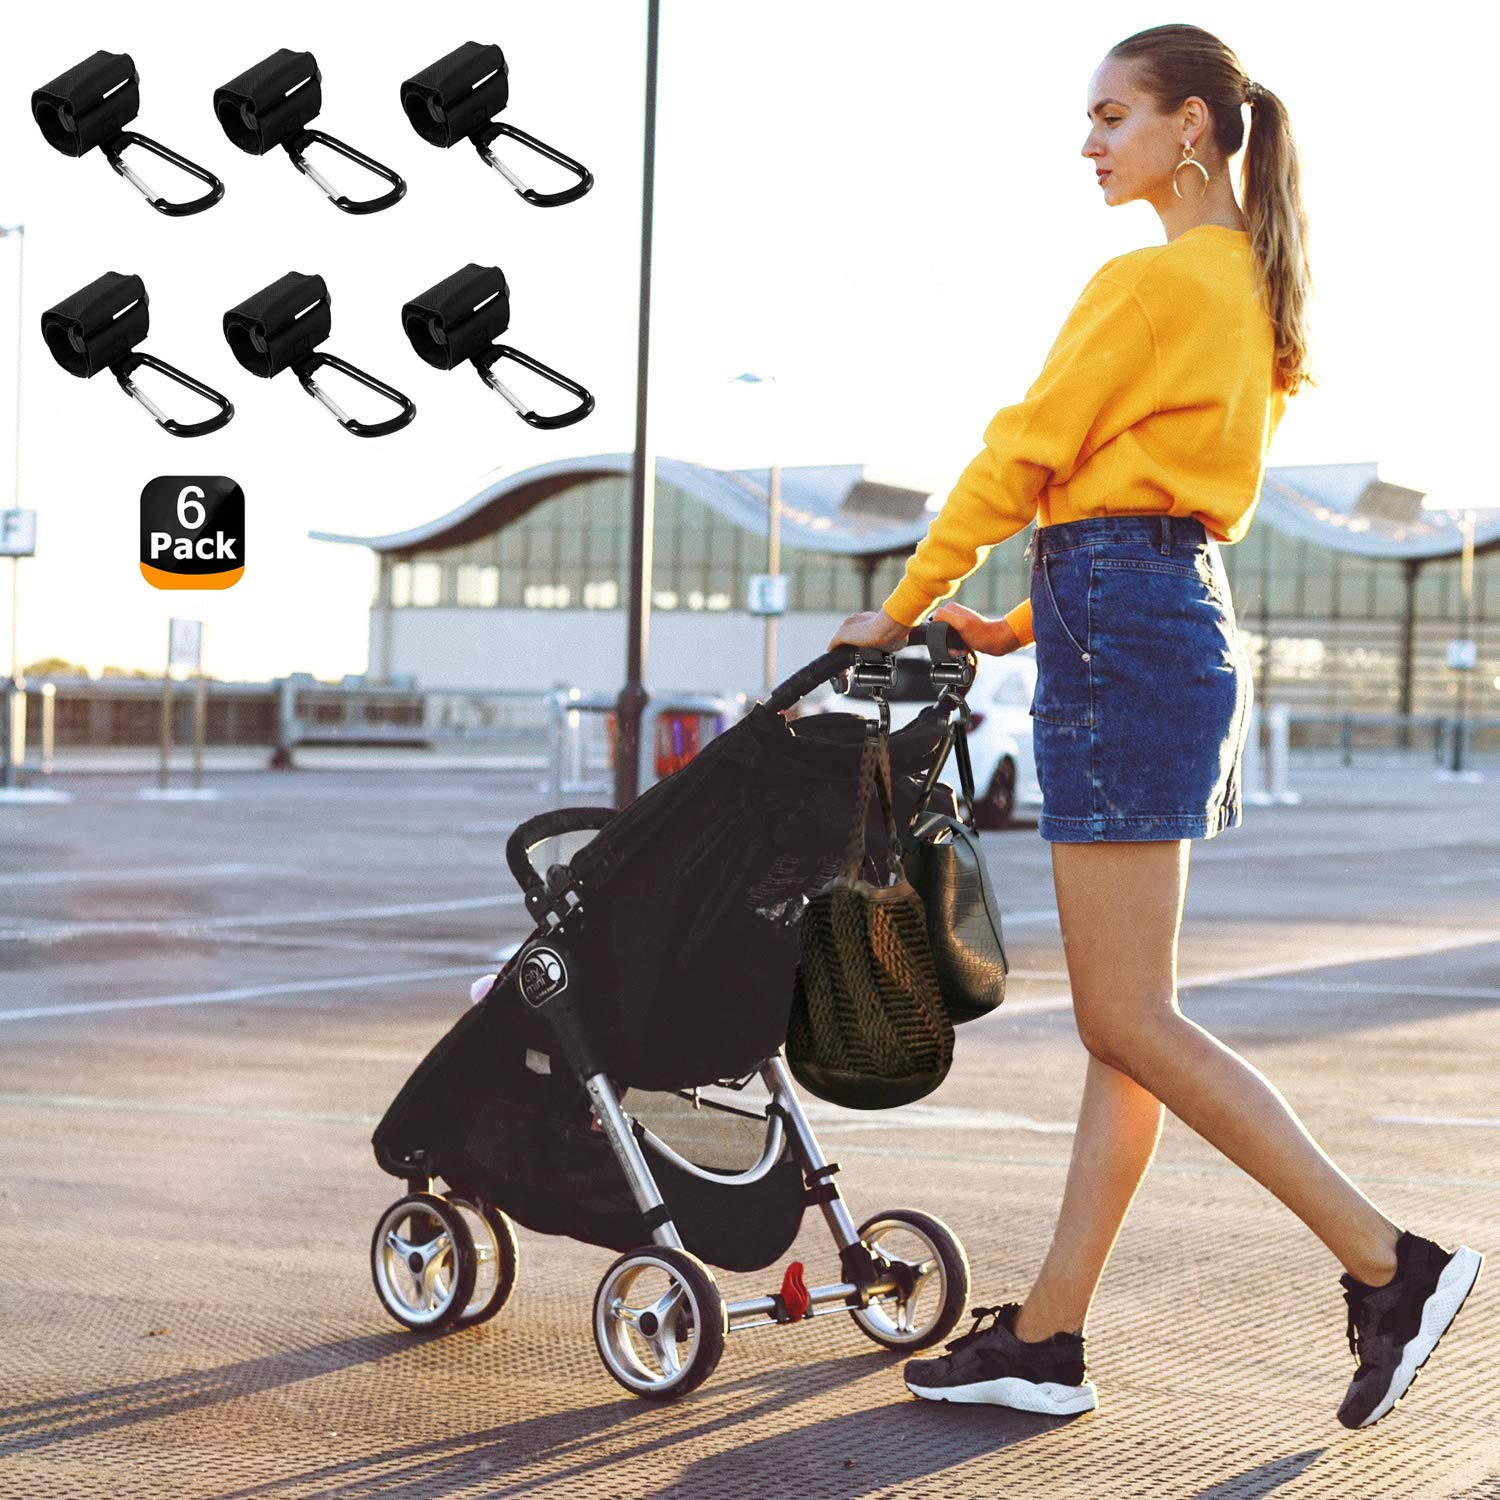 Groceries Clothing 2-PCS HIG Stroller Hooks Hanger for Baby Diaper Bags Purse 4 Pack of Baby Stroller Organizer Hook Clip for Multi-Purpose